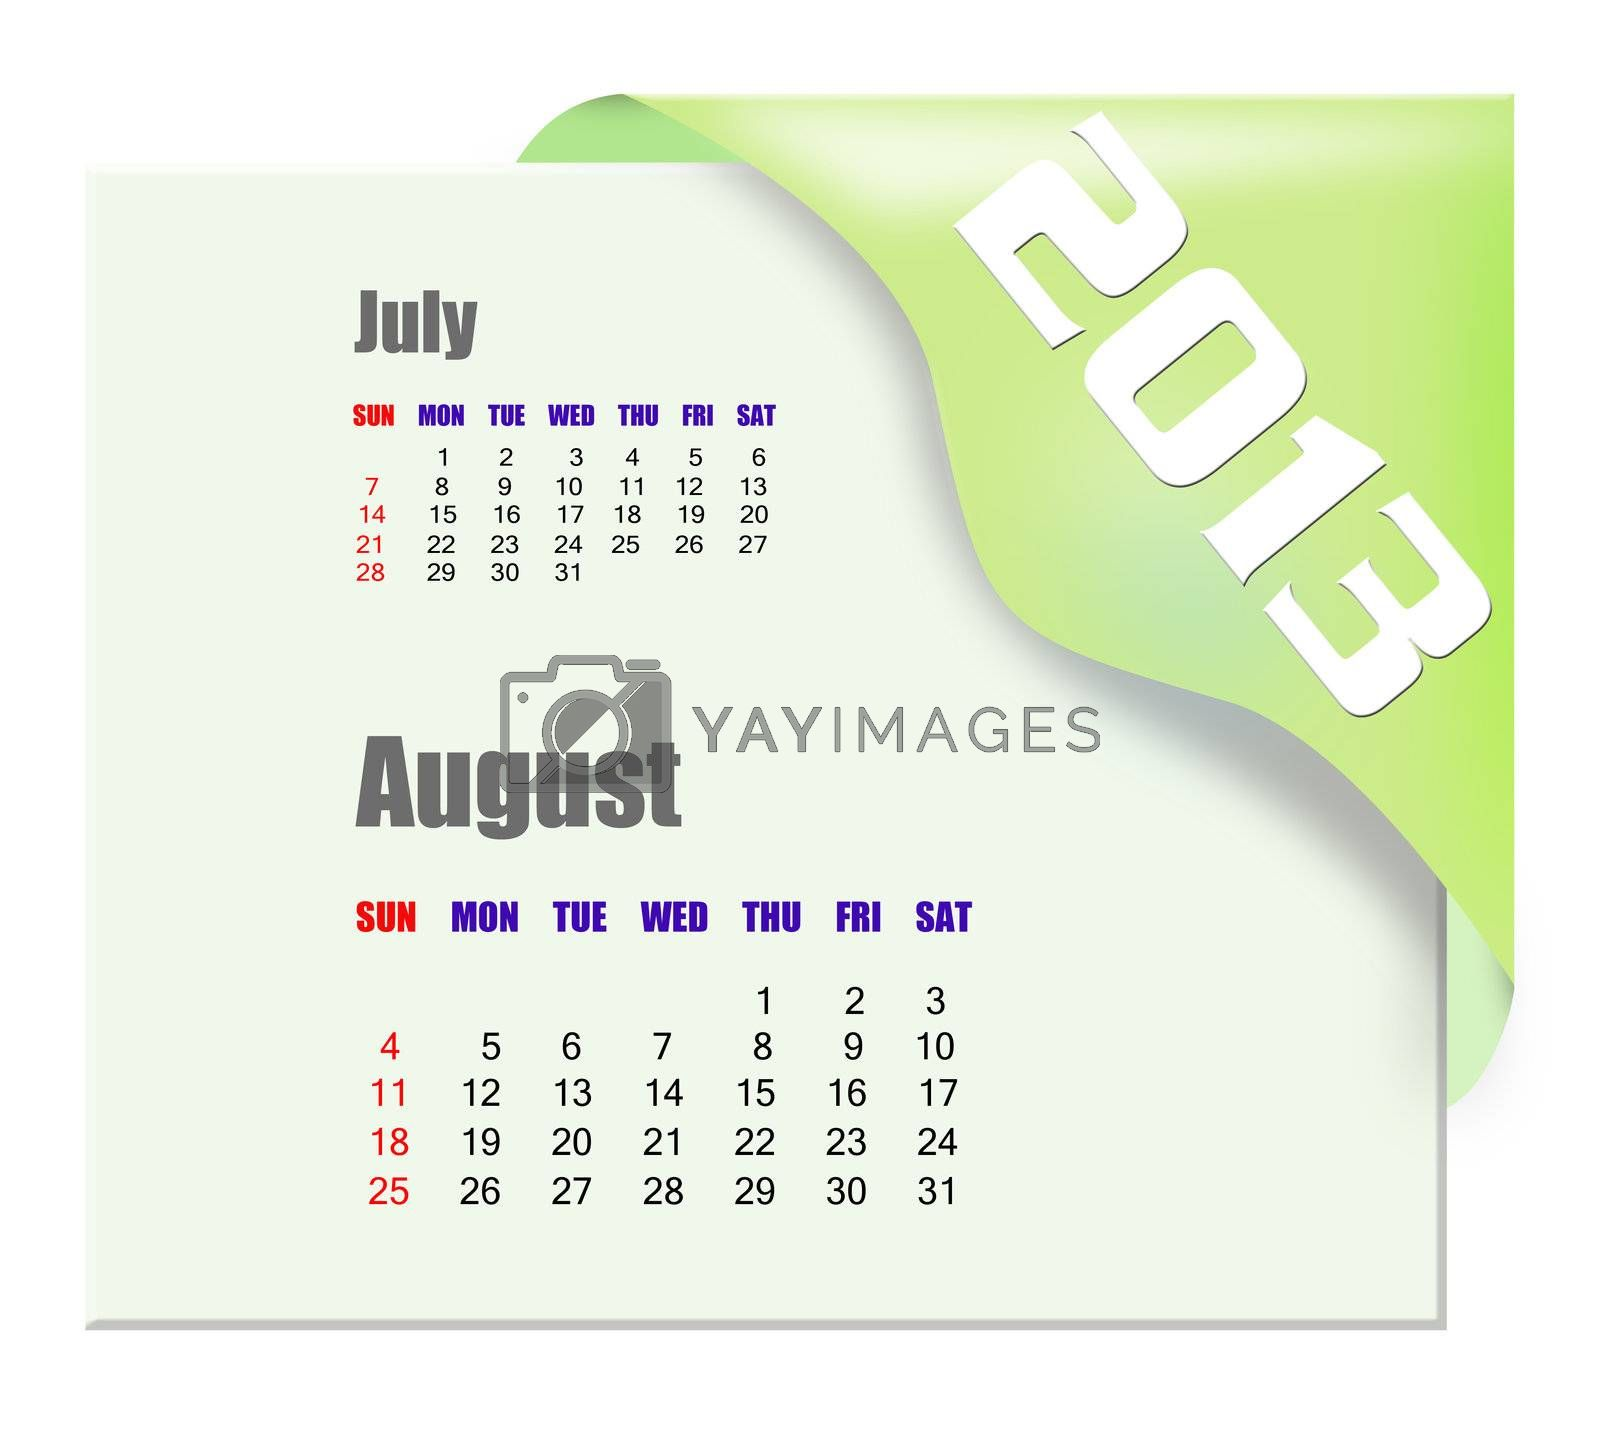 2013 August calendar  by payphoto